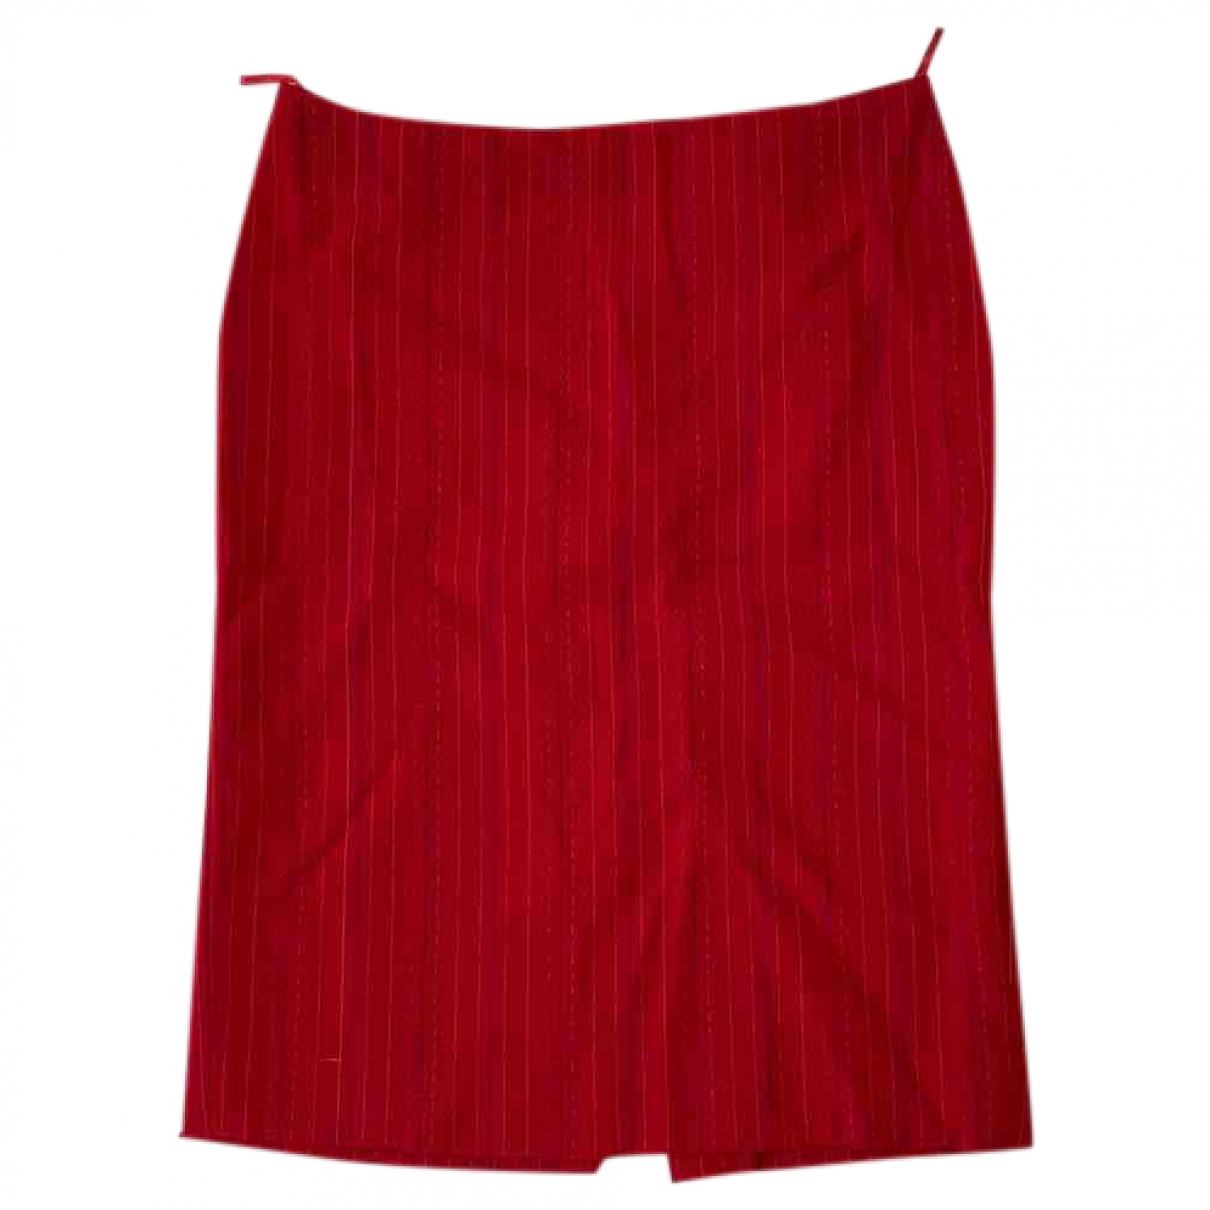 Versus \N Red Wool skirt for Women 38 IT